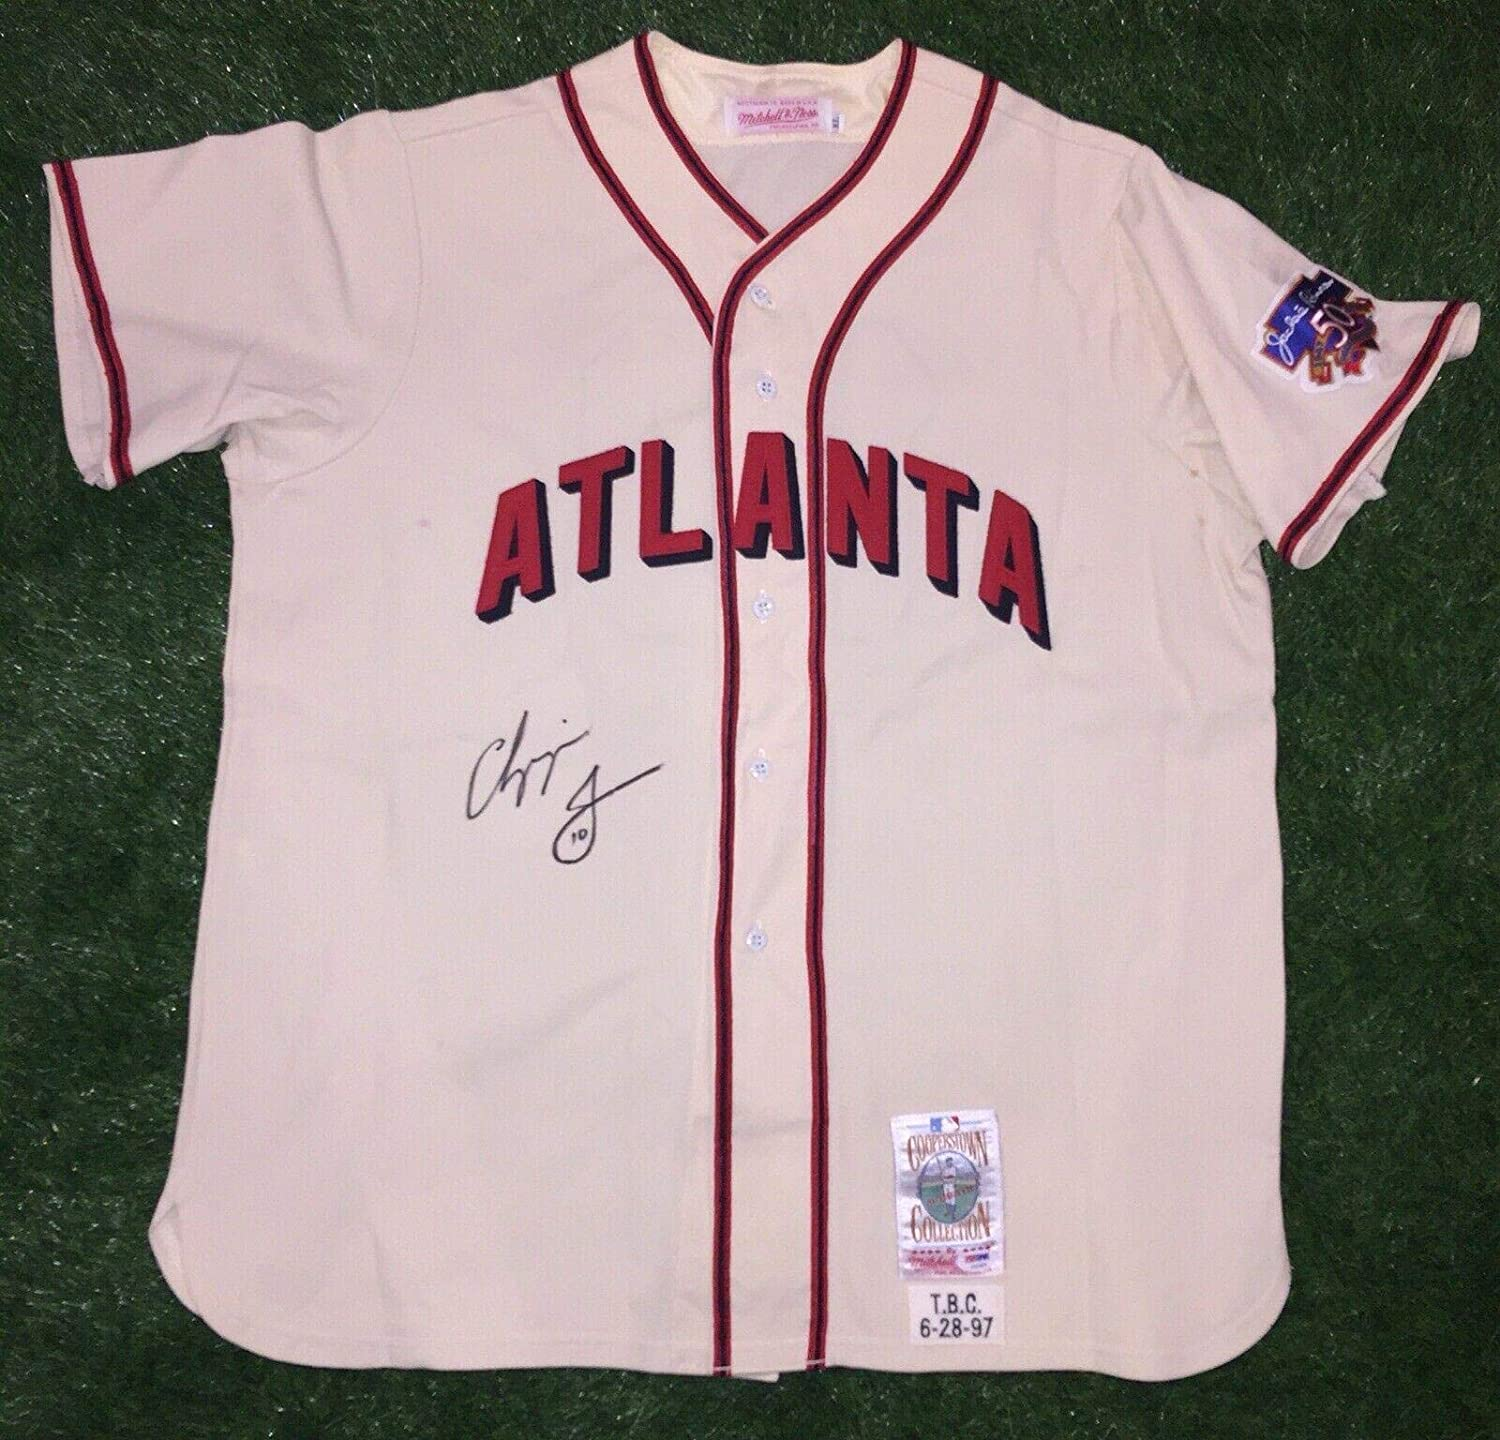 Autographed Chipper Jones Jersey - 1997 Game Use TBTC Auth - PSA/DNA Certified - Autographed MLB Jerseys